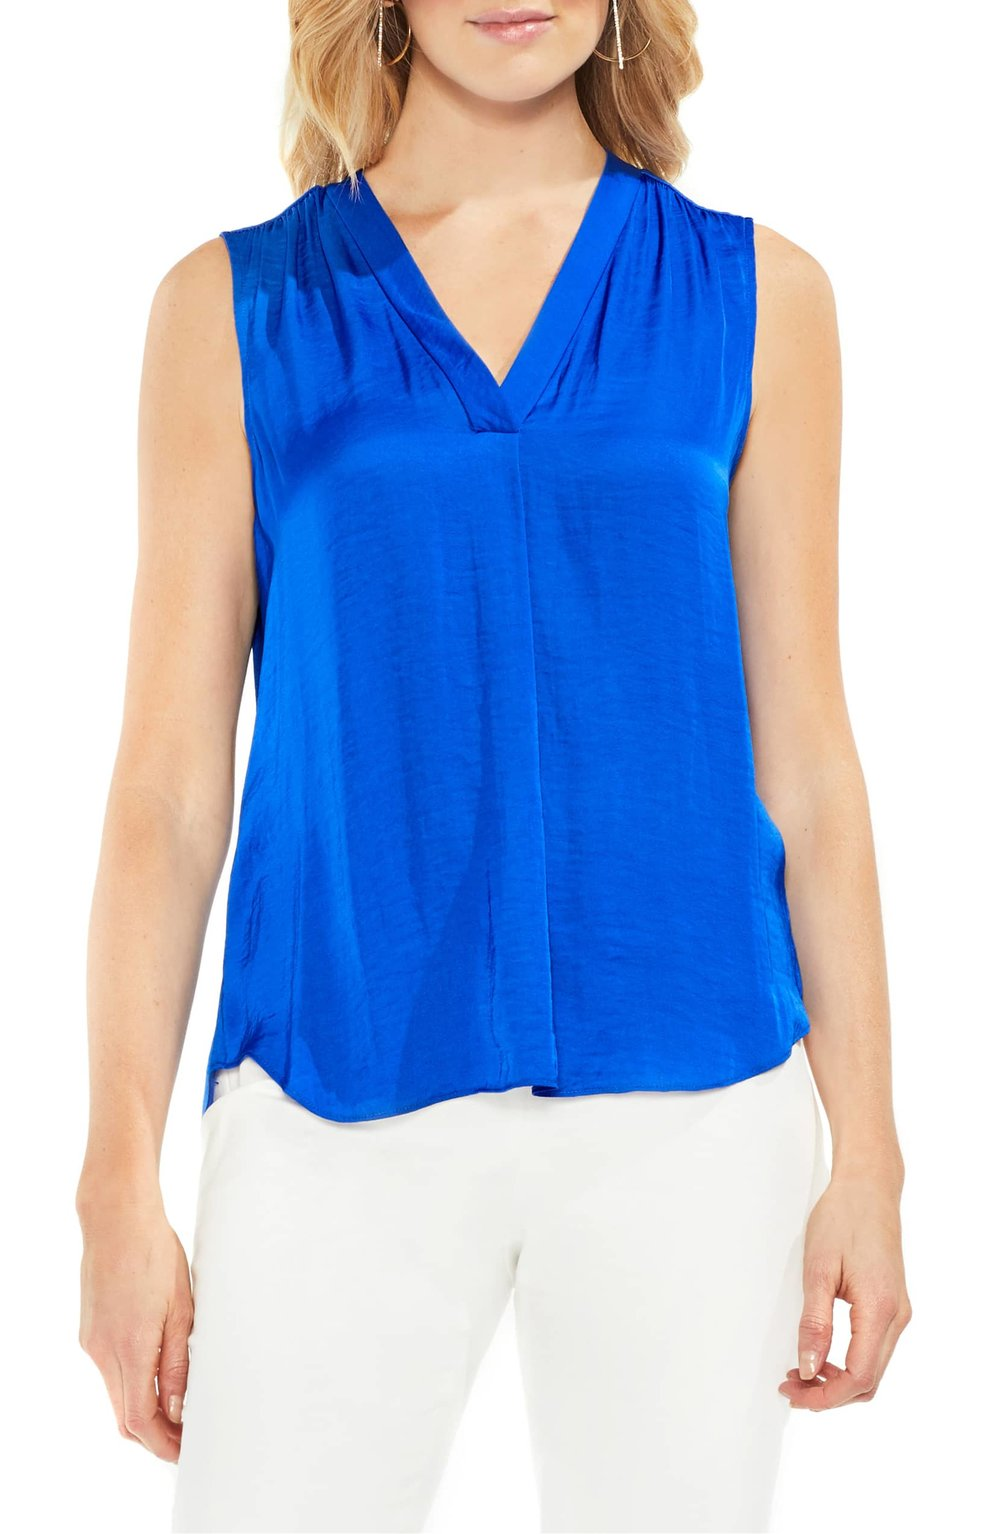 Vince Camuto Rumpled Satin Blouse. Available in a zillion colors. Was: $59. Now: $32.45–$38.90.